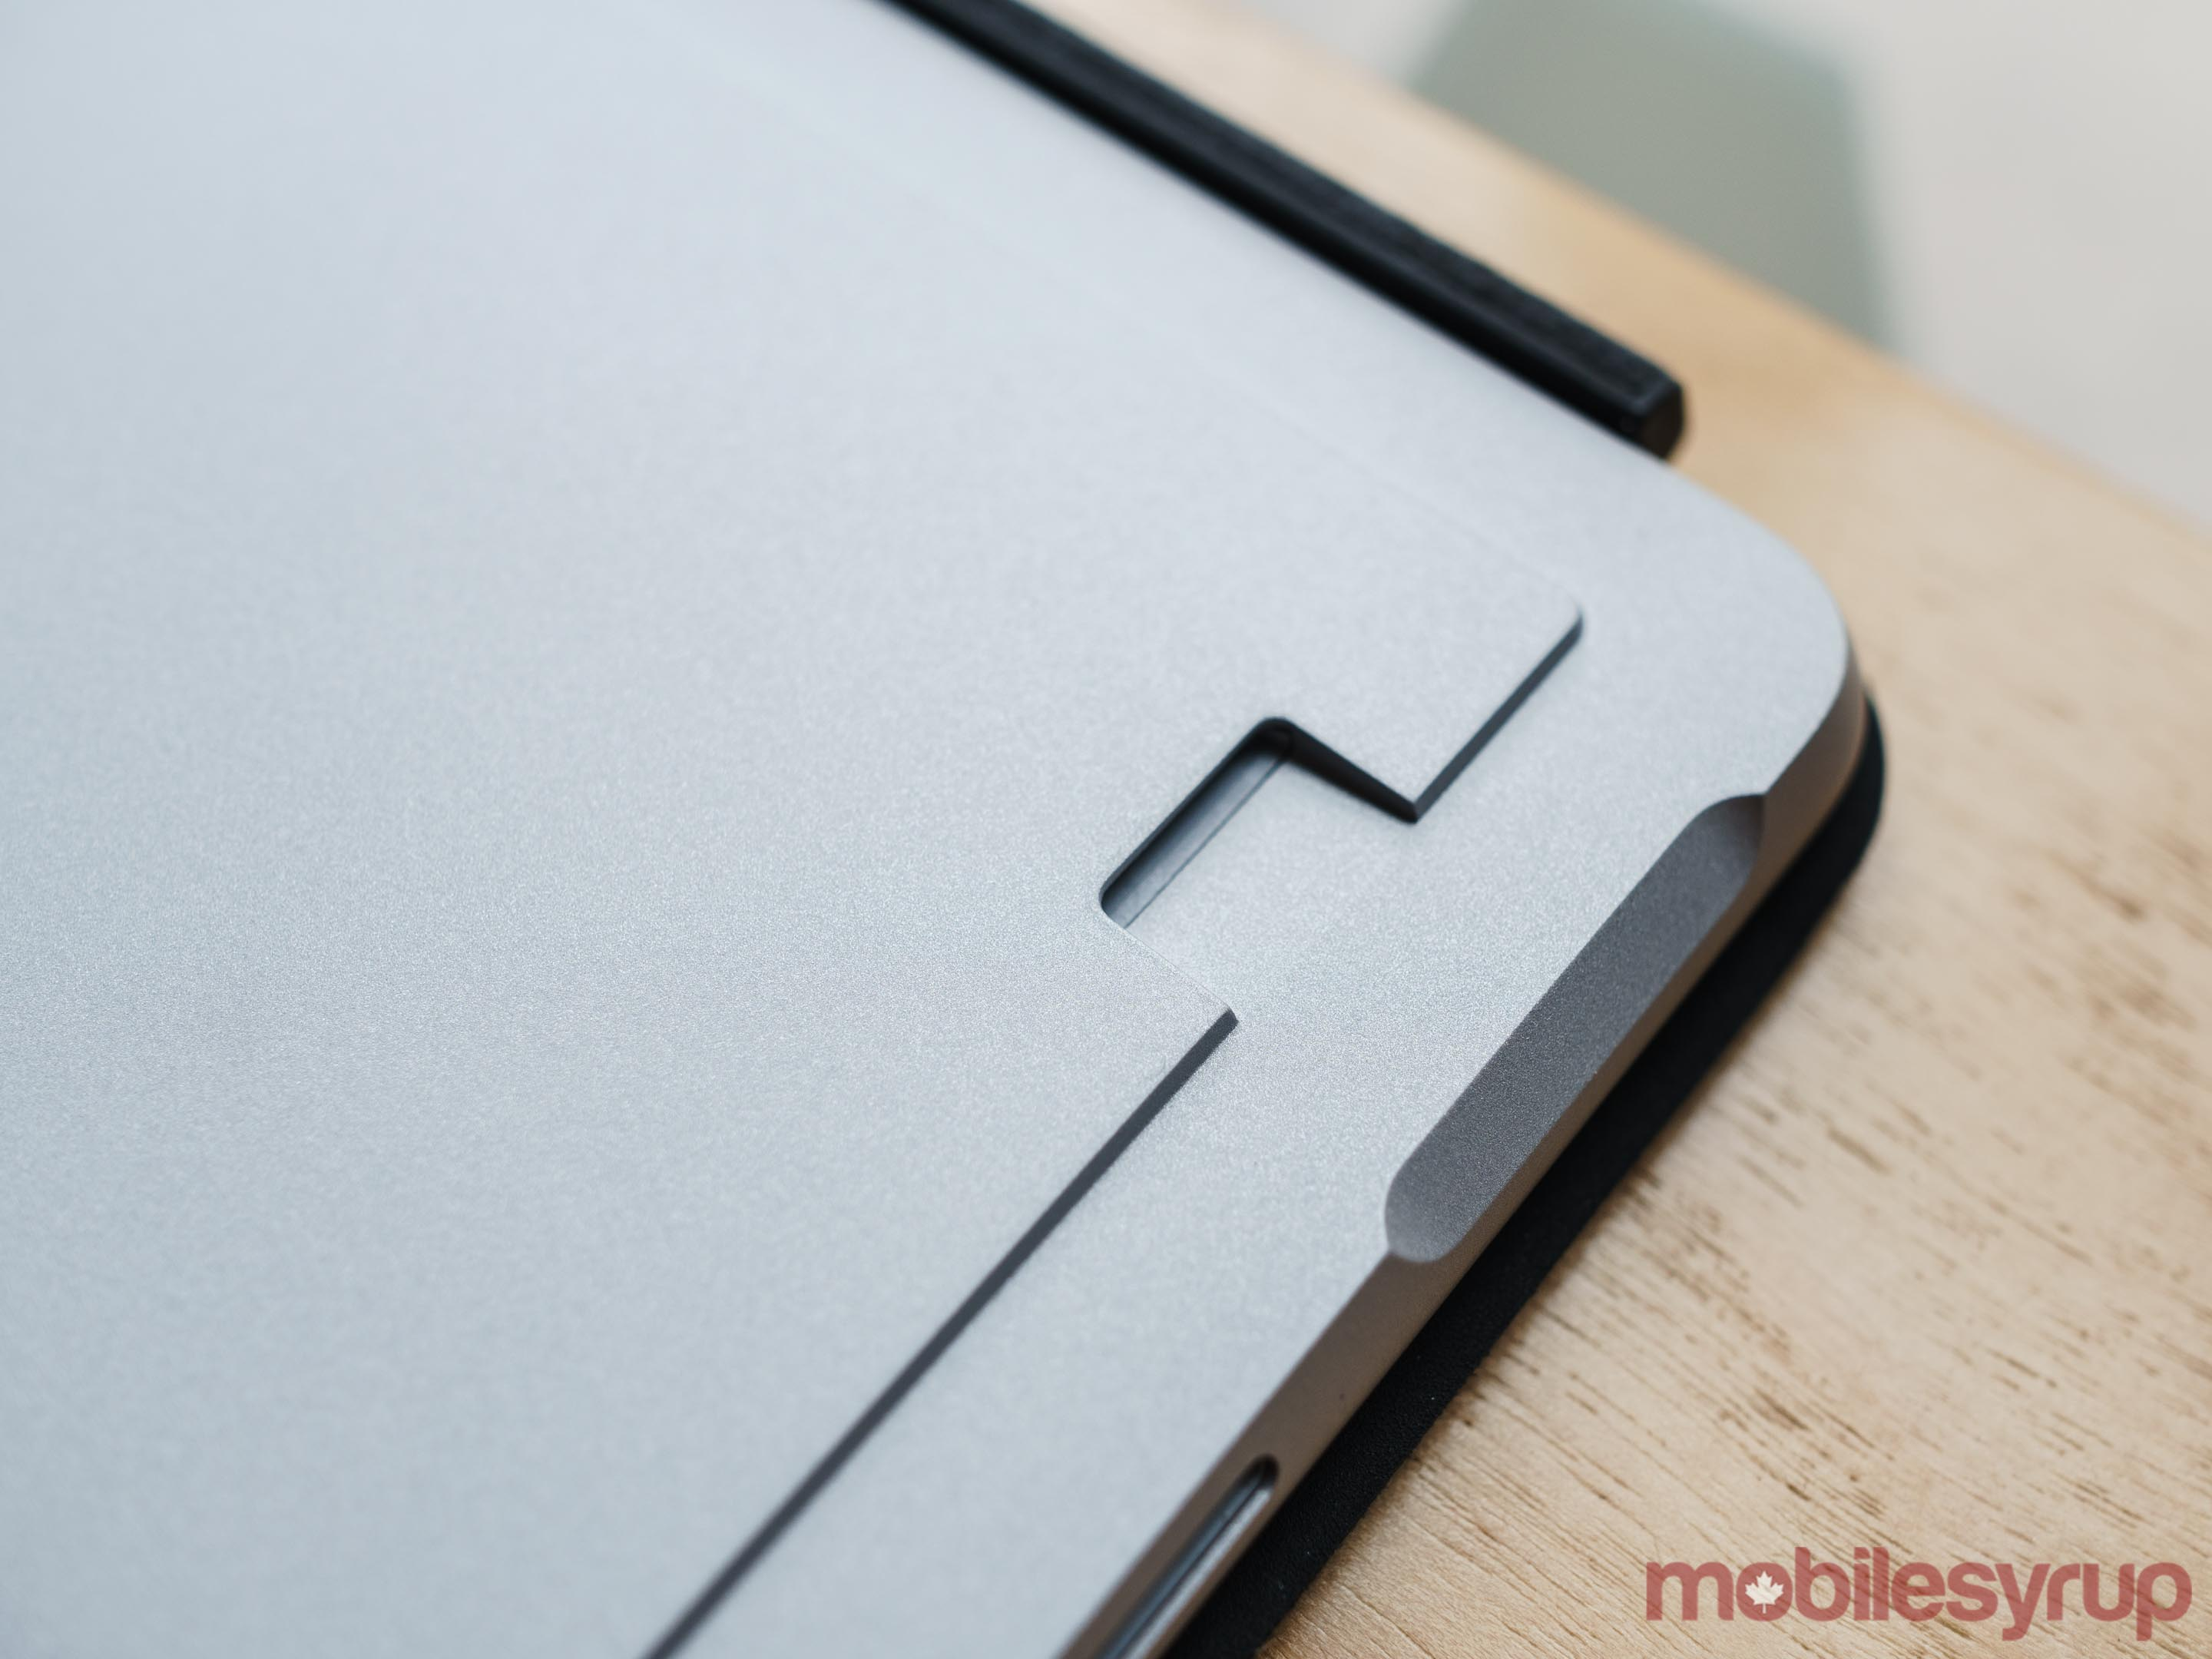 Like past Surface devices, Surface Go features a microSD card reader